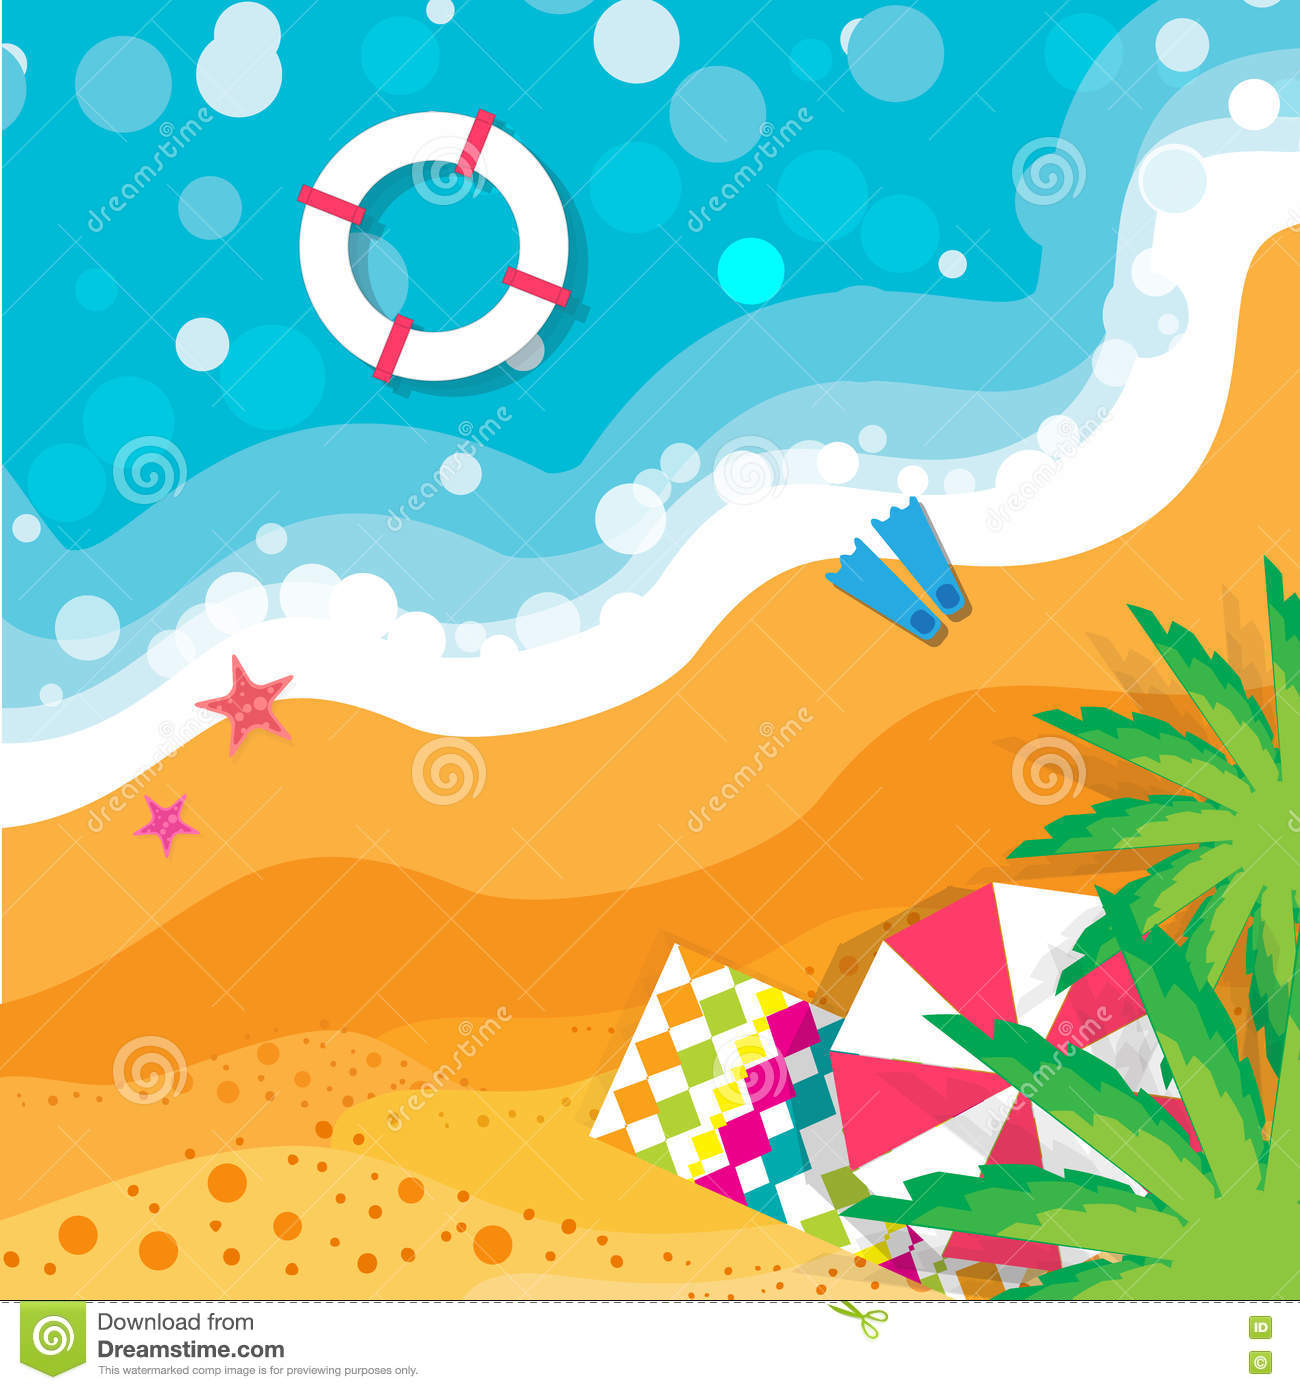 Top View Summer Vacation Beach Rest Time To Travel Sea Waves Sand And Umbrella Palm Vector Design Background Objects Illustrations